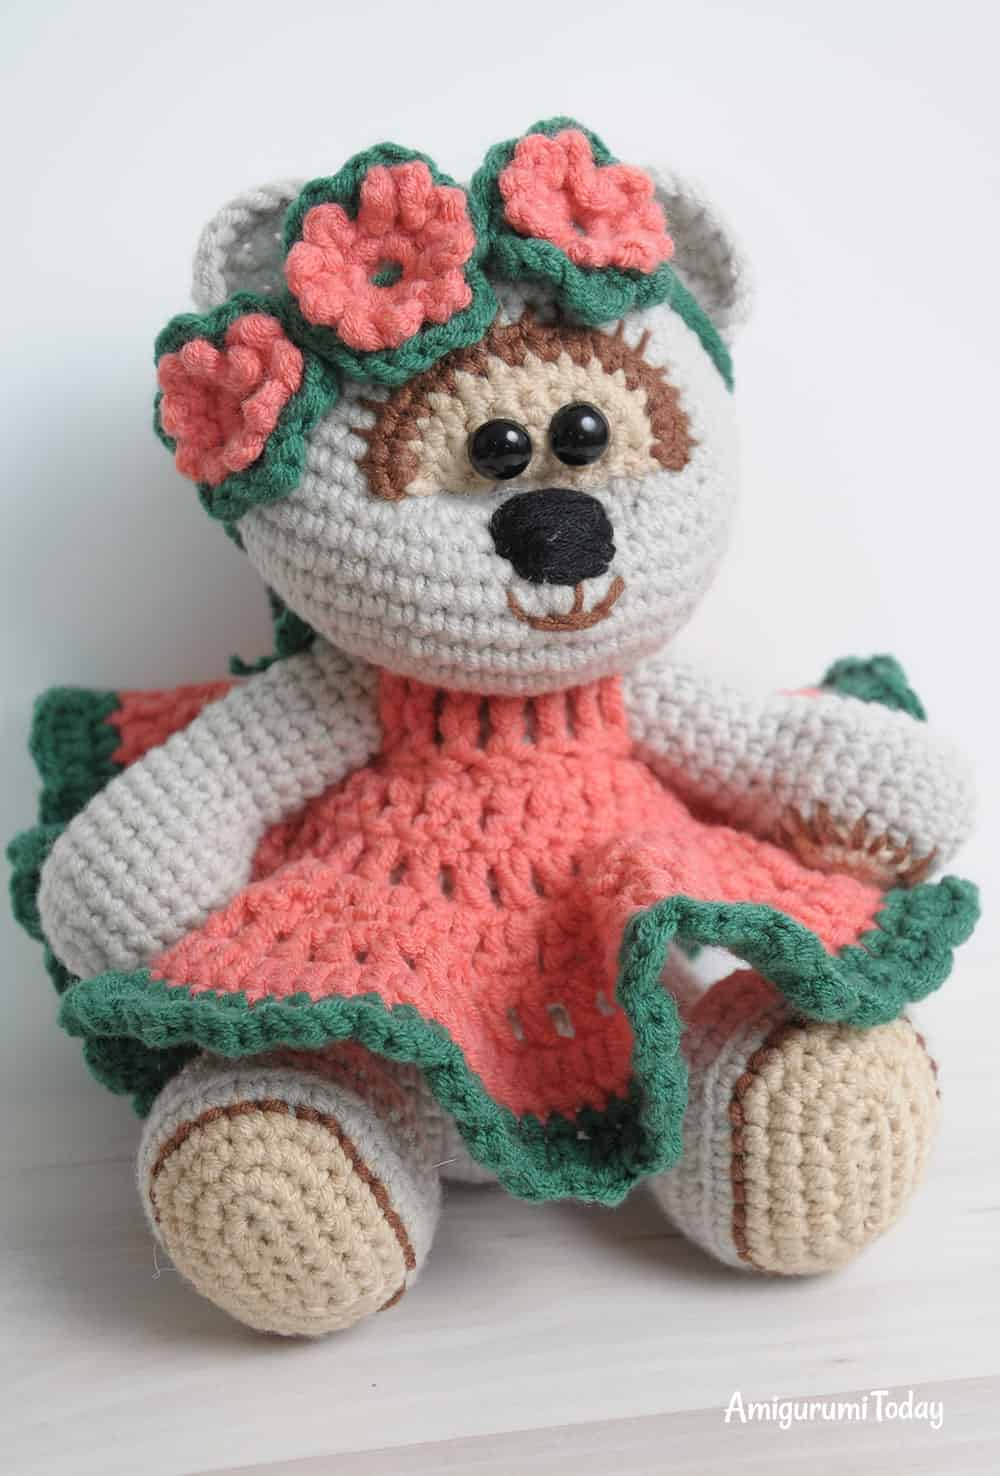 Honey teddy bear girl amigurumi pattern